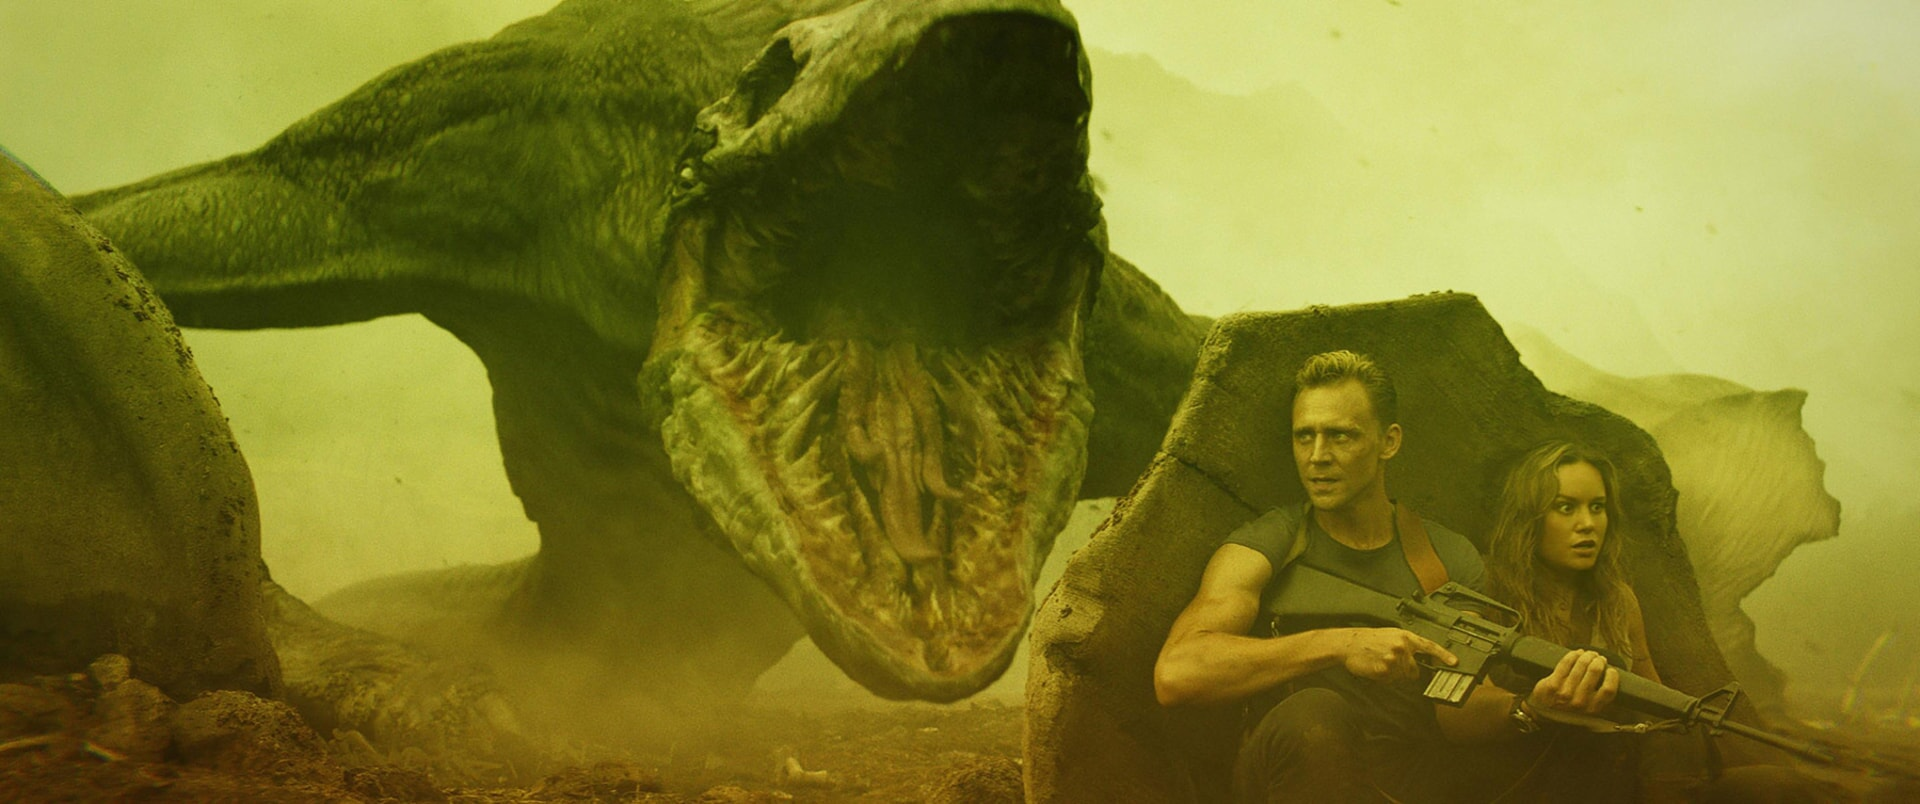 """TOM HIDDLESTON as James Conrad and BRIE LARSON as Mason Weaver in Warner Bros. Pictures', Legendary Pictures' and Tencent Pictures' action adventure """"KONG: SKULL ISLAND,"""" a Warner Bros. Pictures release."""